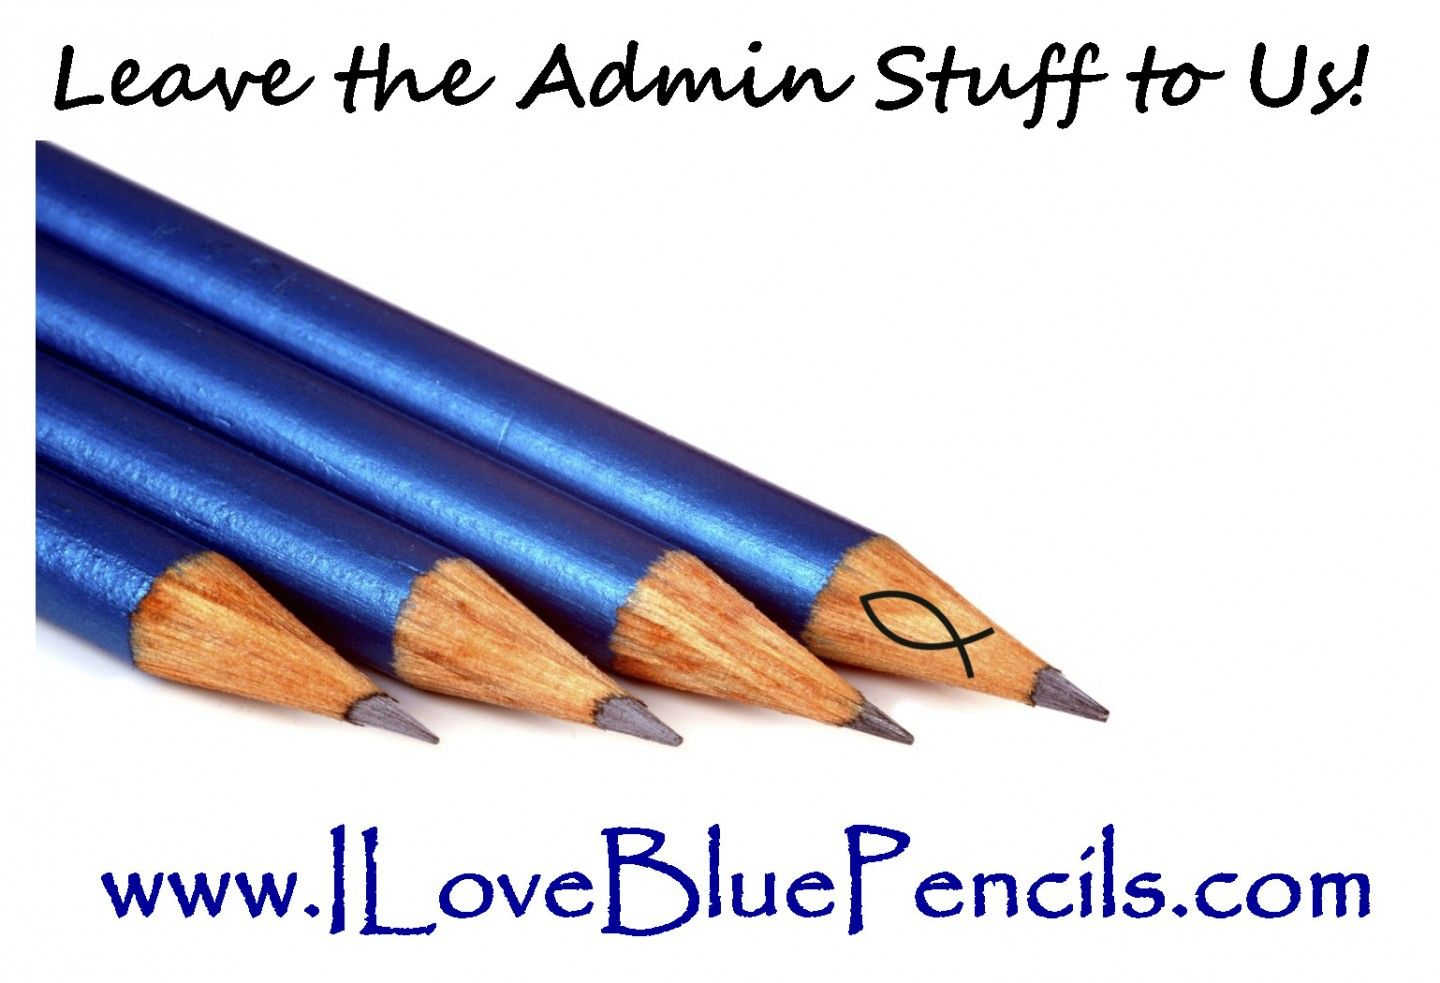 Leave the Admin Stuff to Us!